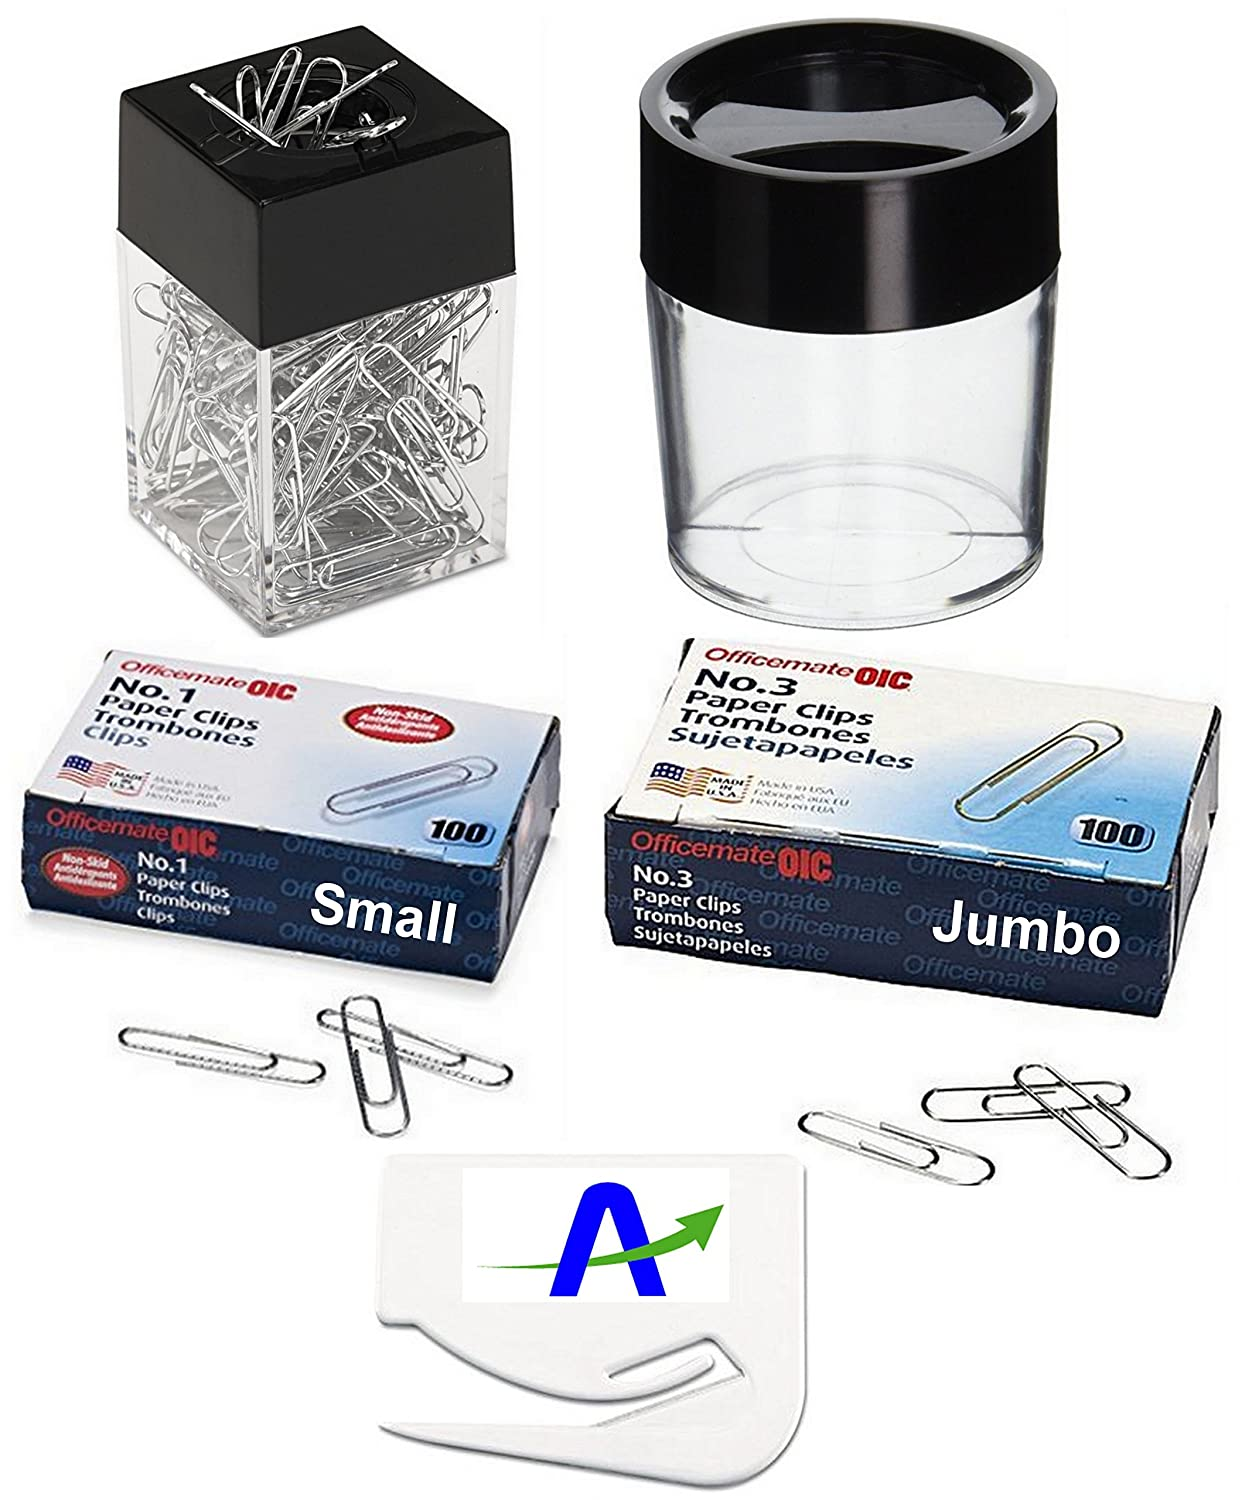 Value Bundle OIC Small and Jumbo Non-Skid Paper Clips and 2 Magnetic Dispensers, 1 each of Small and Large Plus a Custom AOP Letter Opener OfficeMate